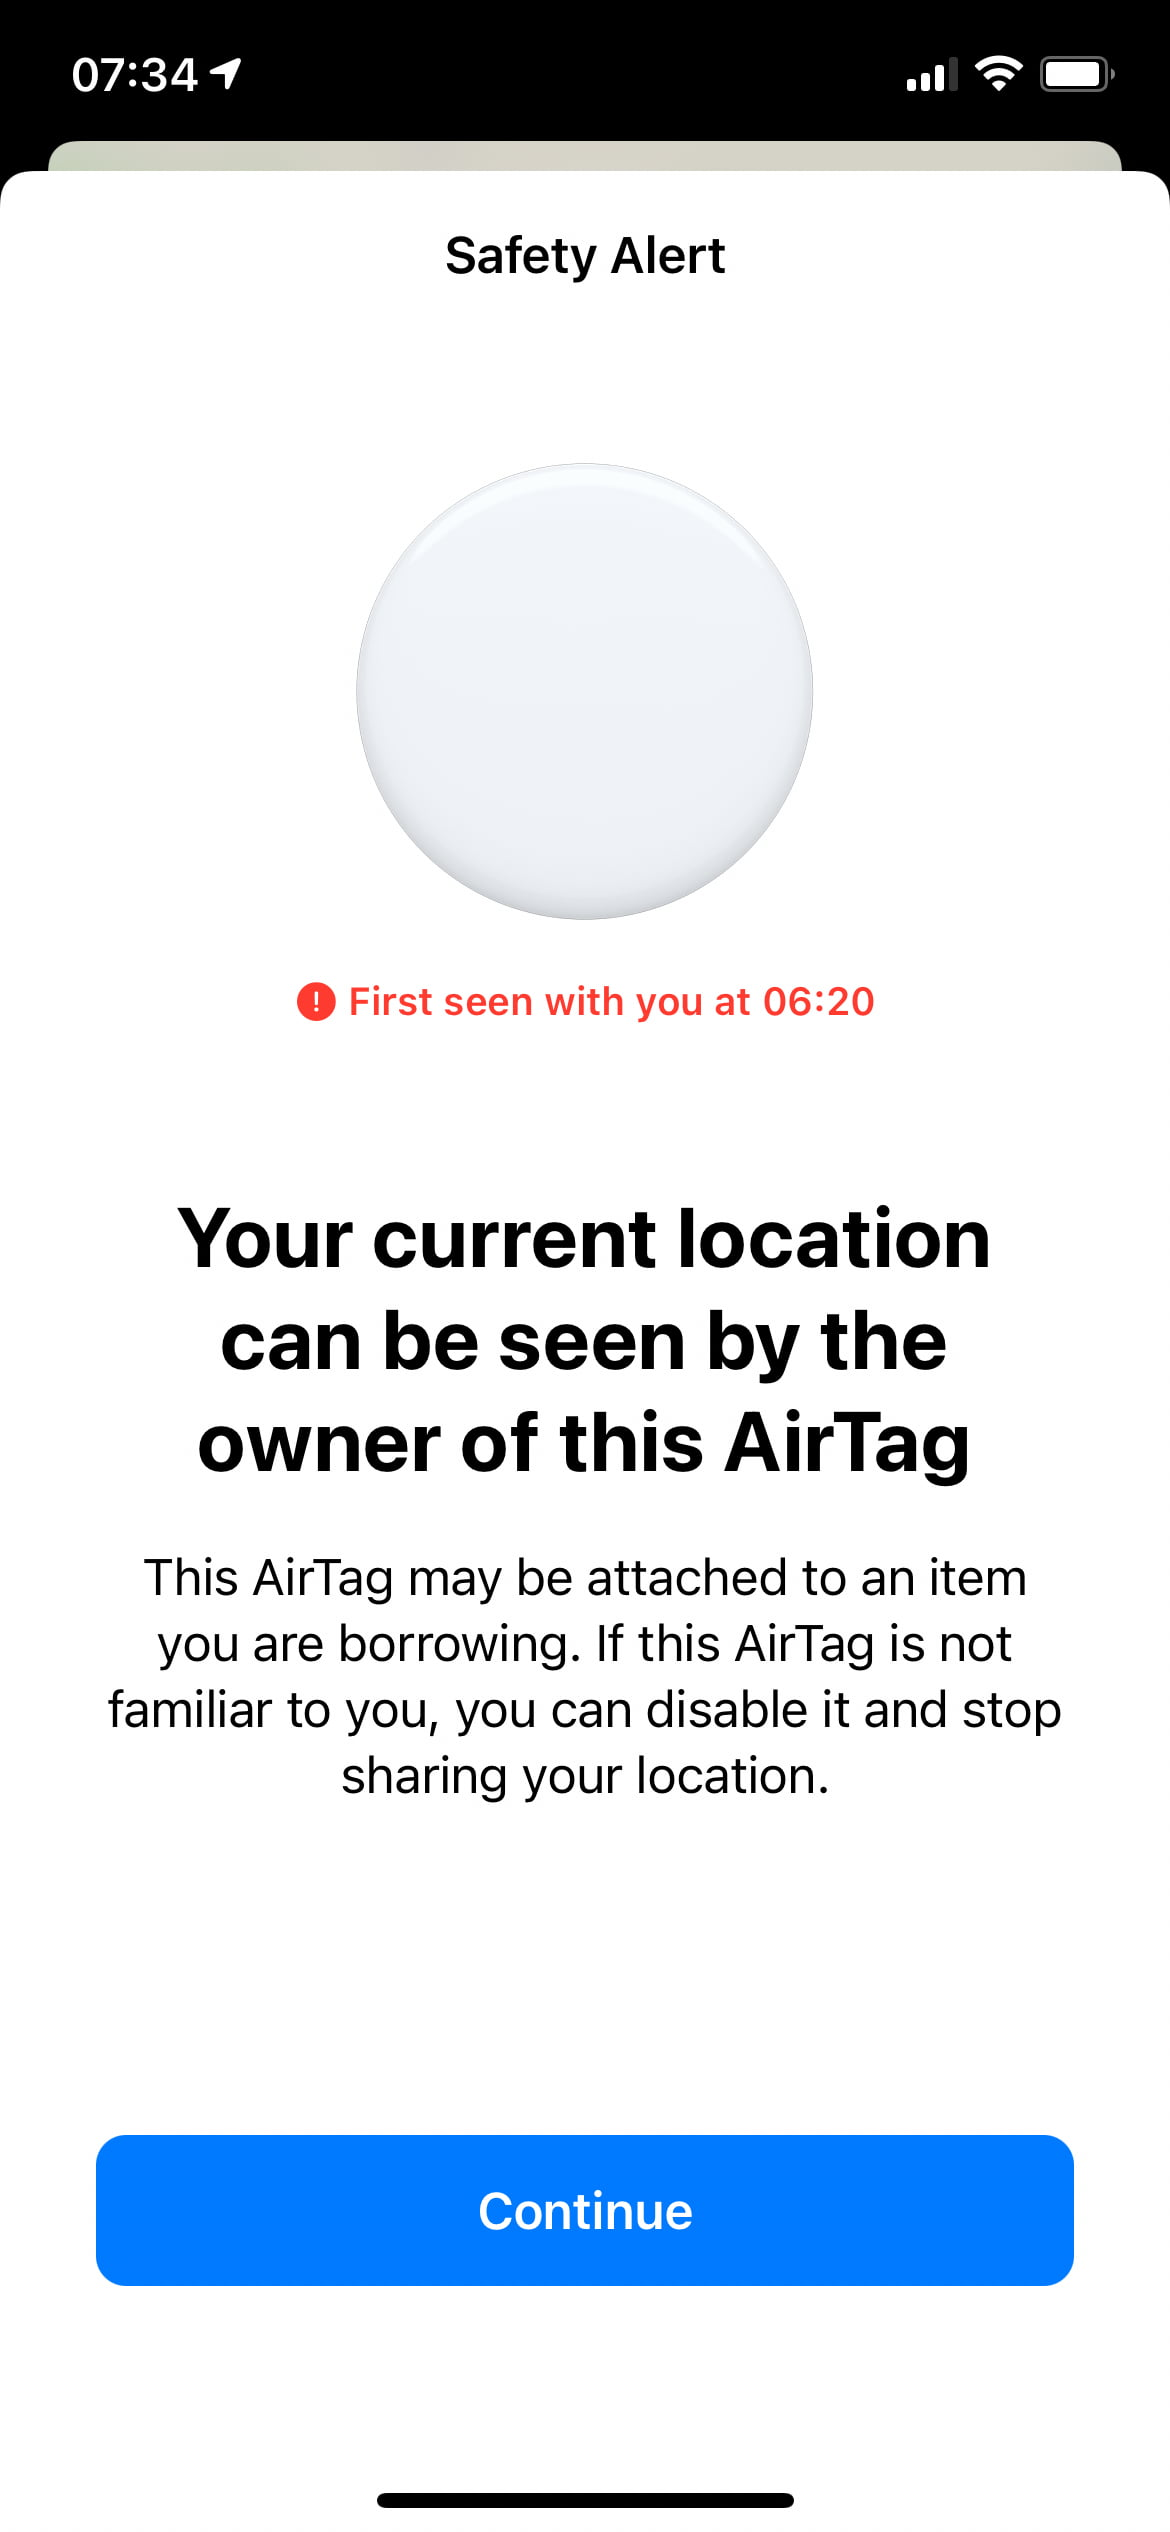 safety alert from AirTag